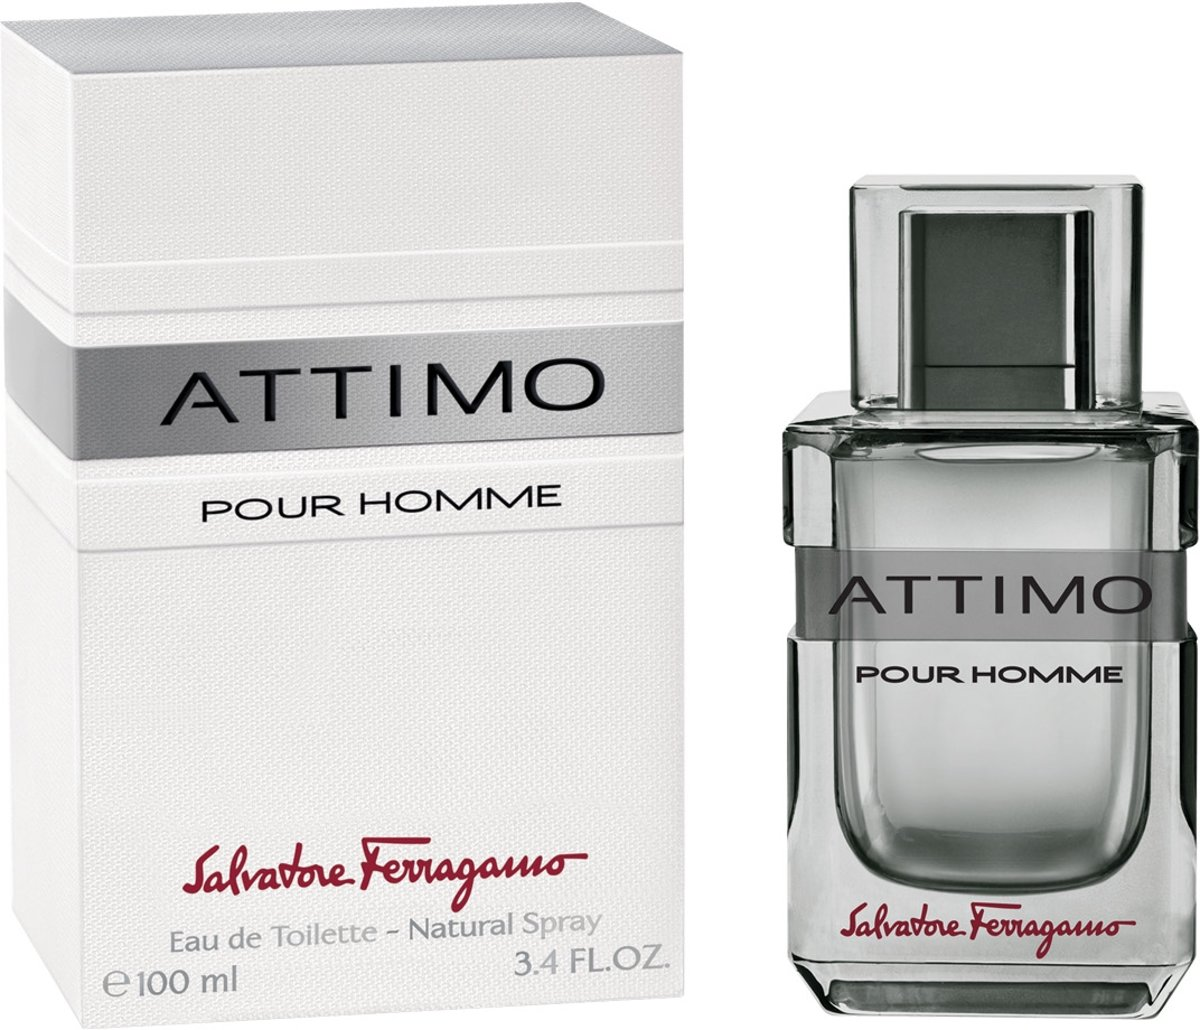 Salvatore Ferragamo Attimo 100 ml Mannen 100ml eau de toilette